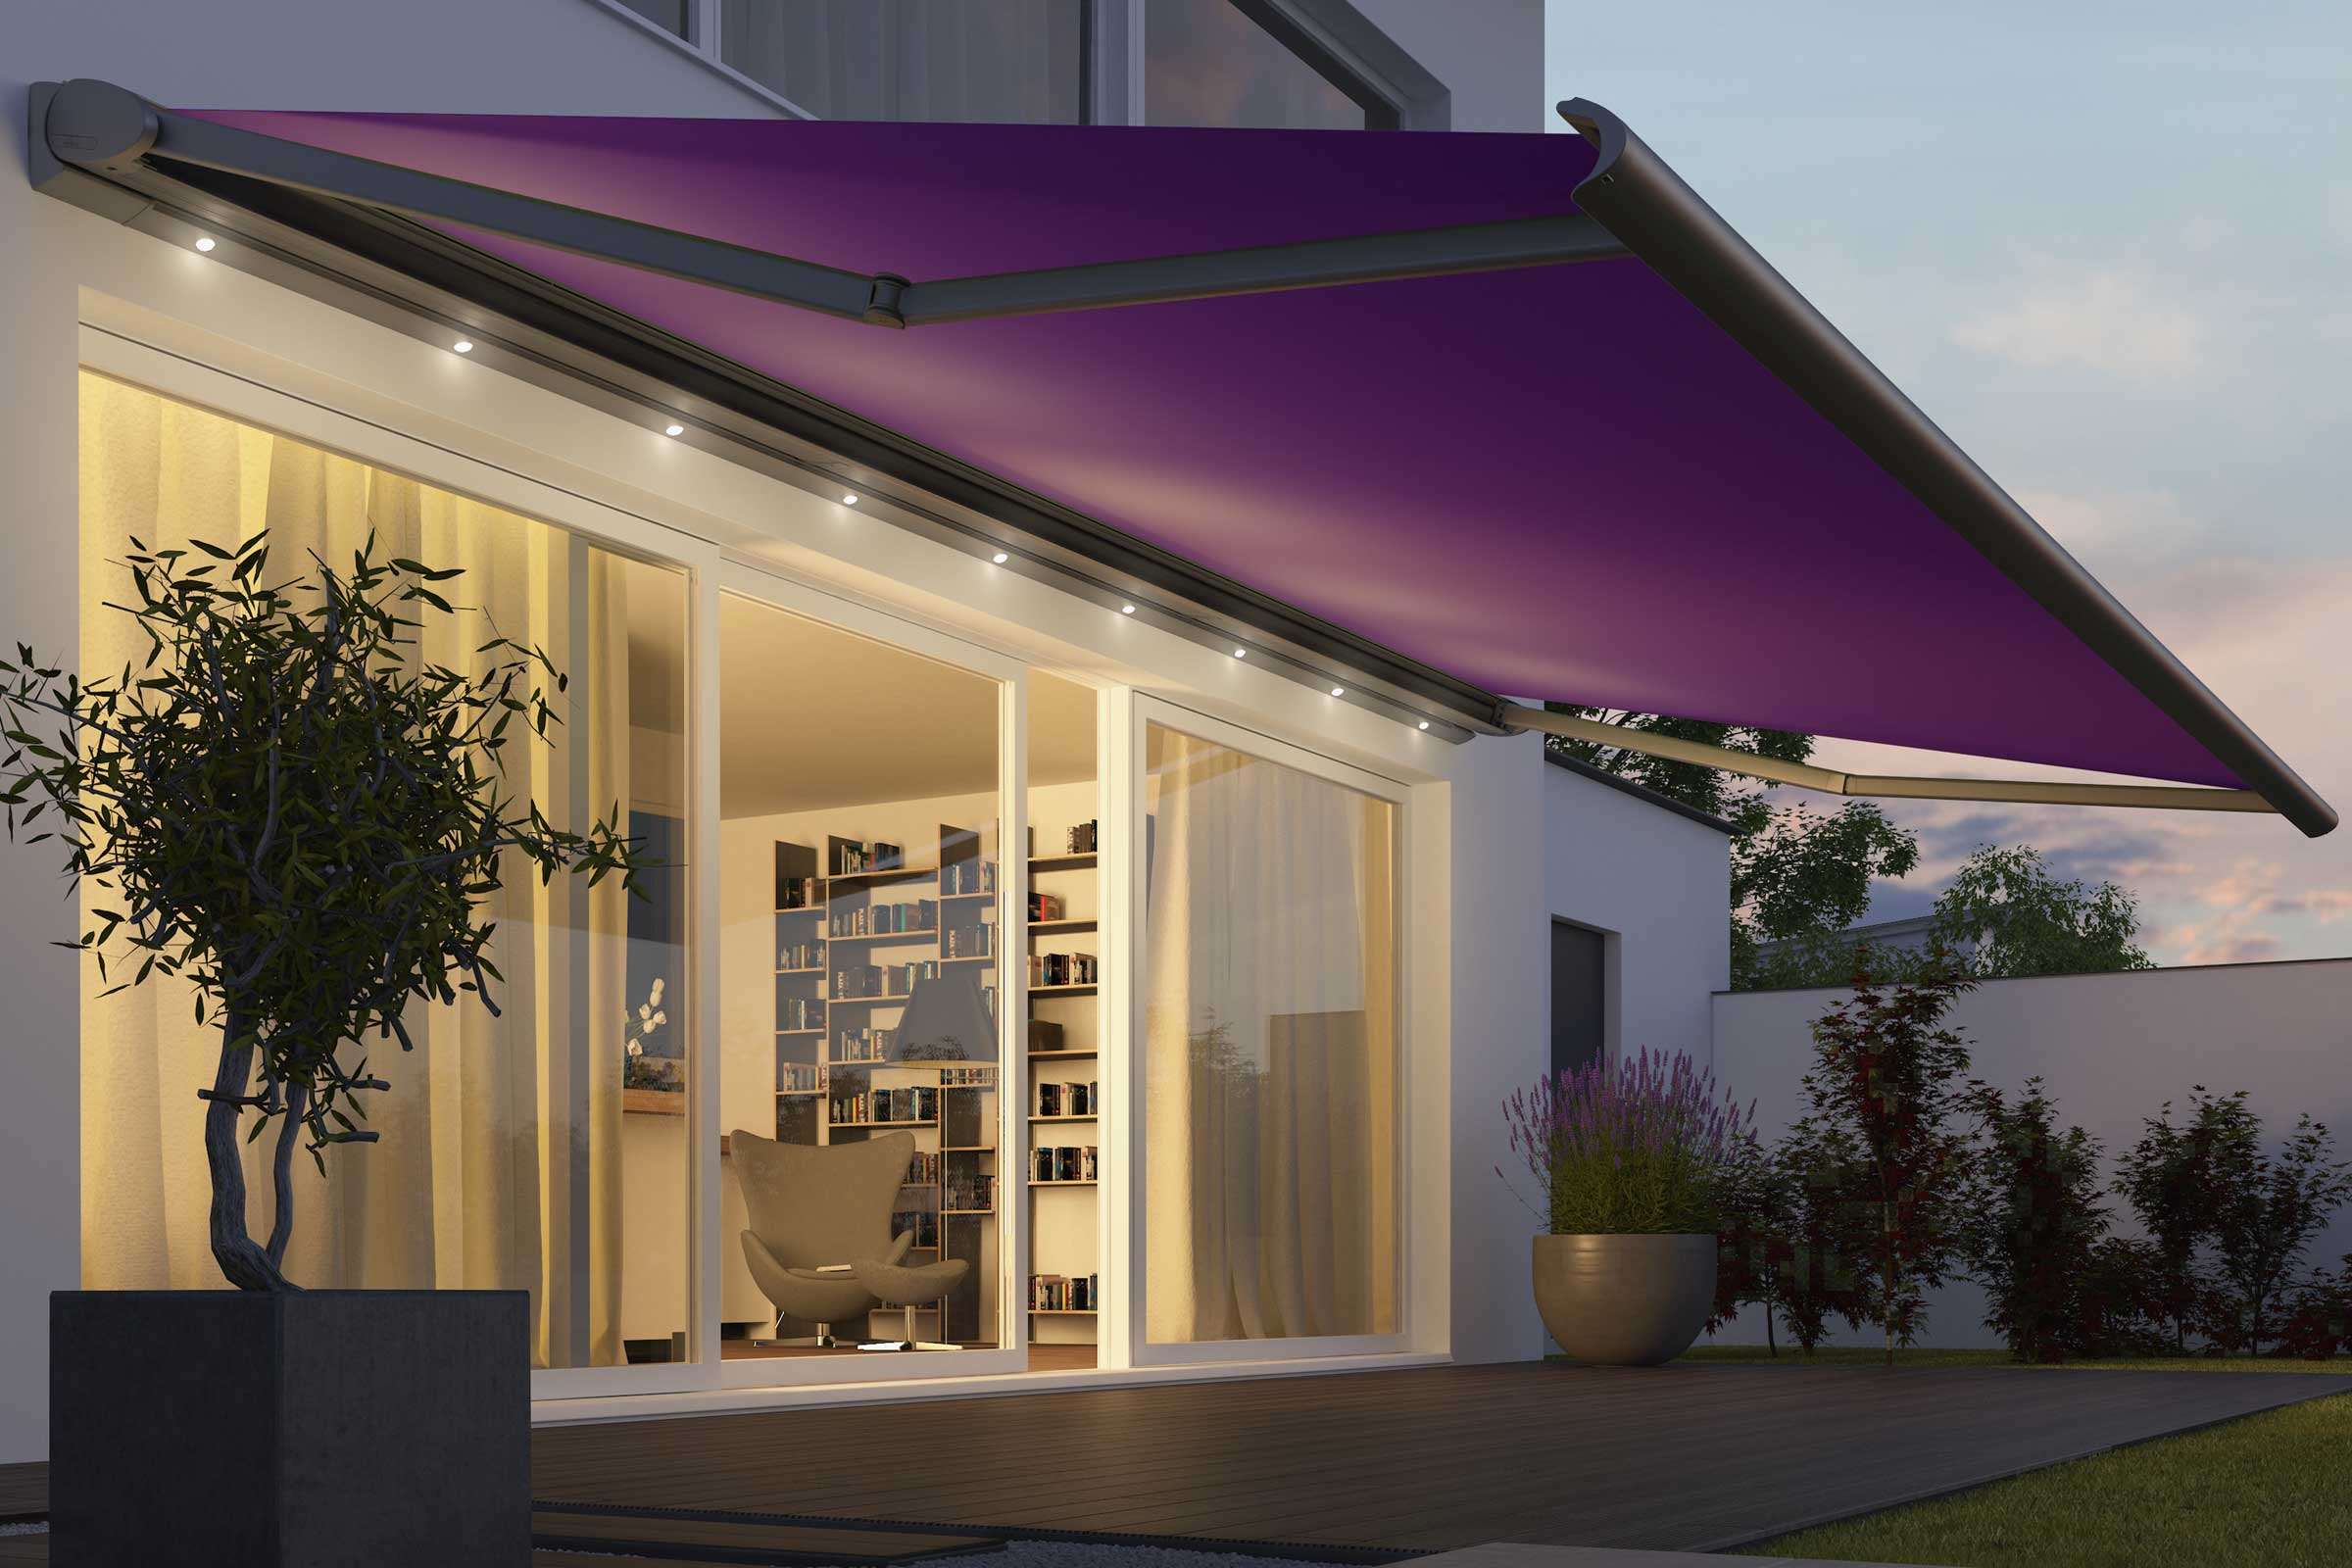 An illuminated Awning brightening up the lazy evening